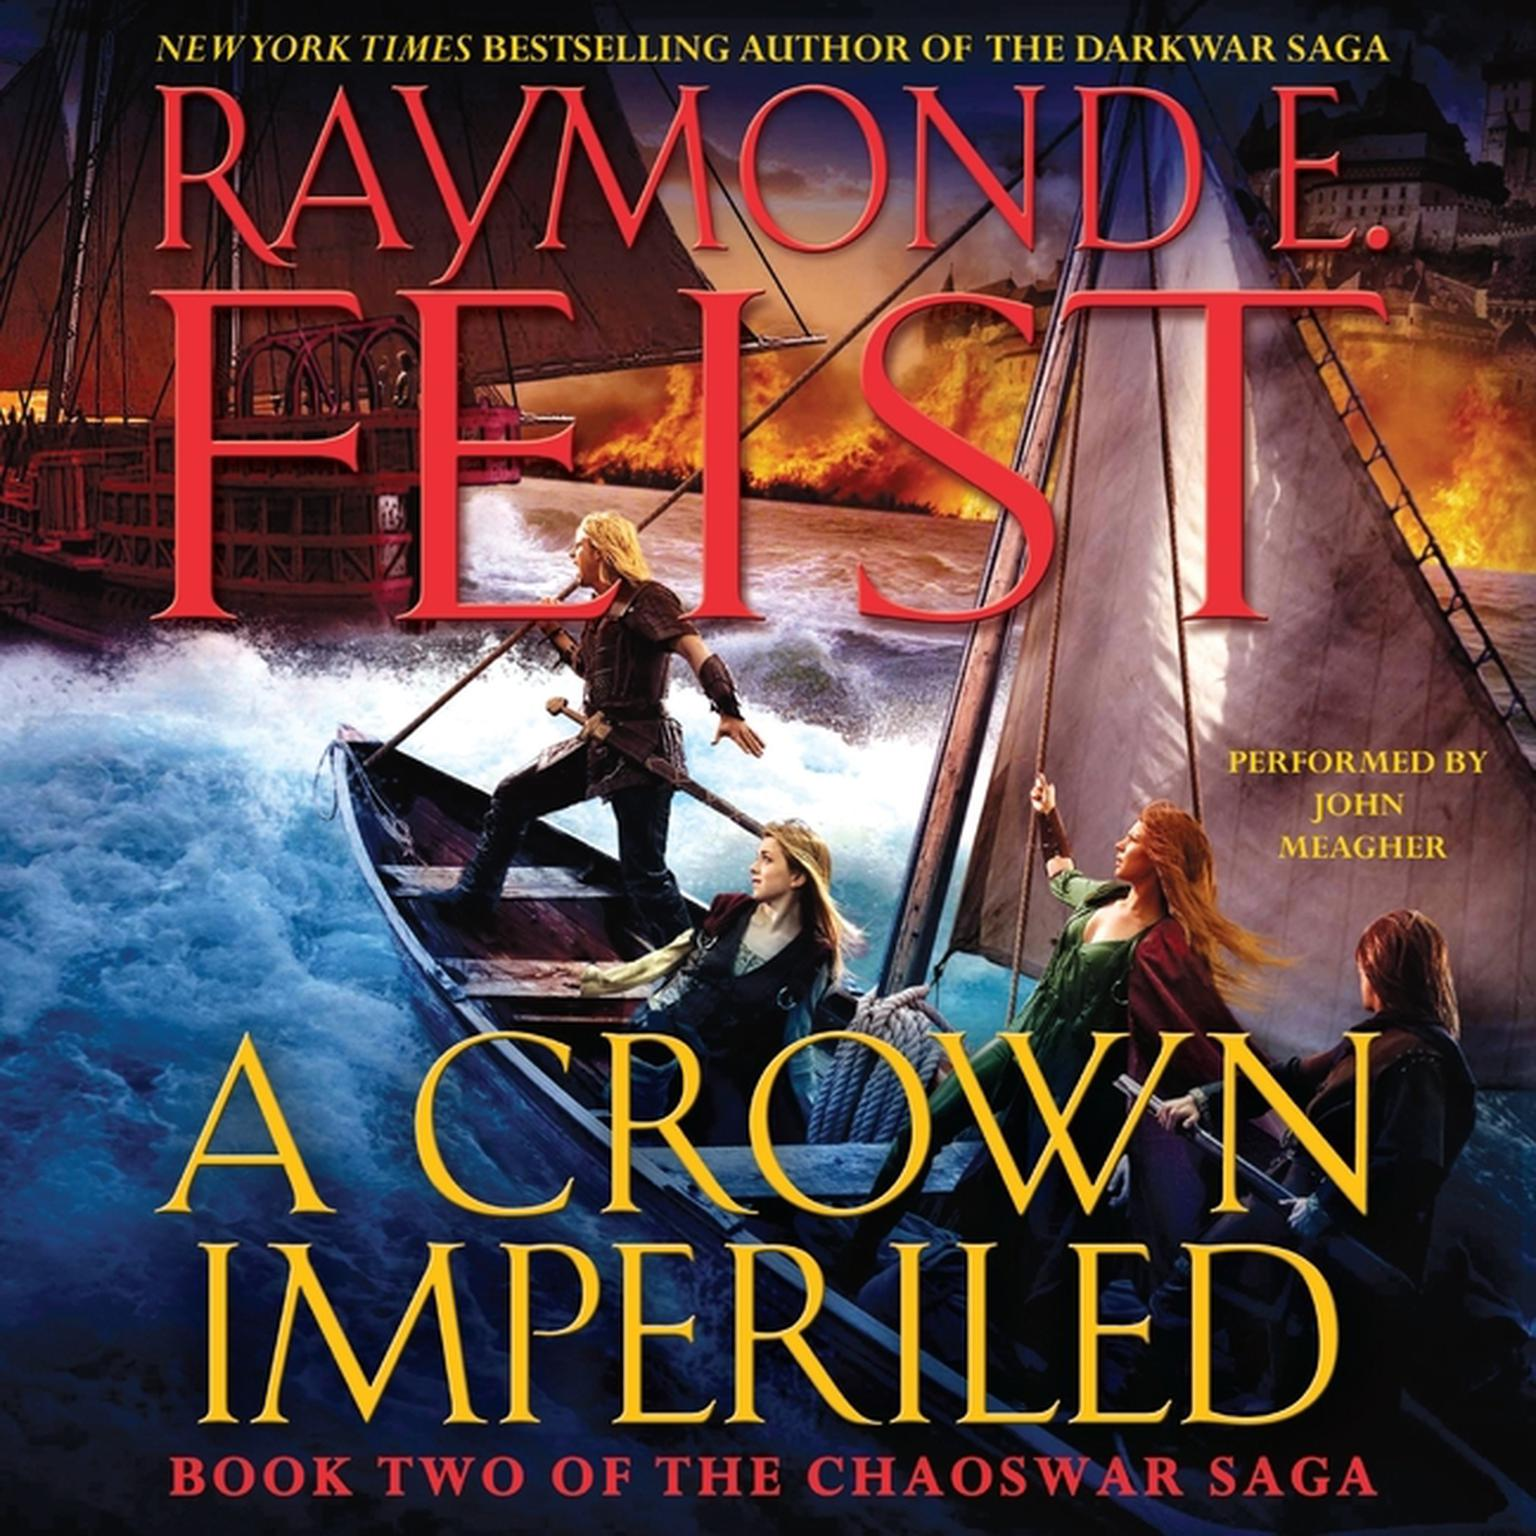 Printable A Crown Imperiled: Book Two of the Chaoswar Saga Audiobook Cover Art